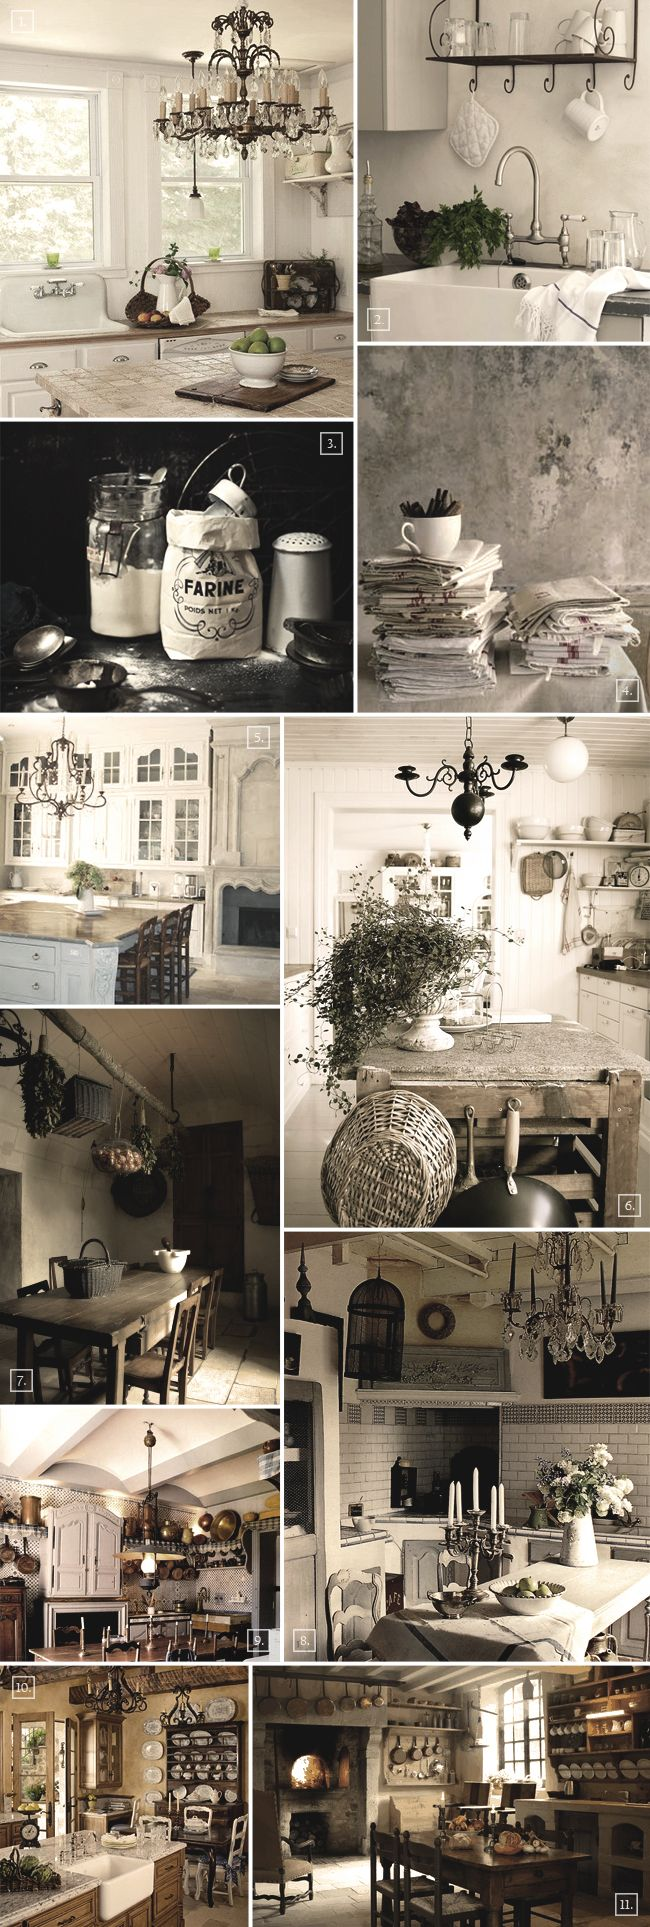 French Kitchen Decor Ideas.  The French country style is quite fashionably rustic. You'll see lots of raw materials like wooden farm style tables and copper pots and accessories, but then there hangs a chandelier.